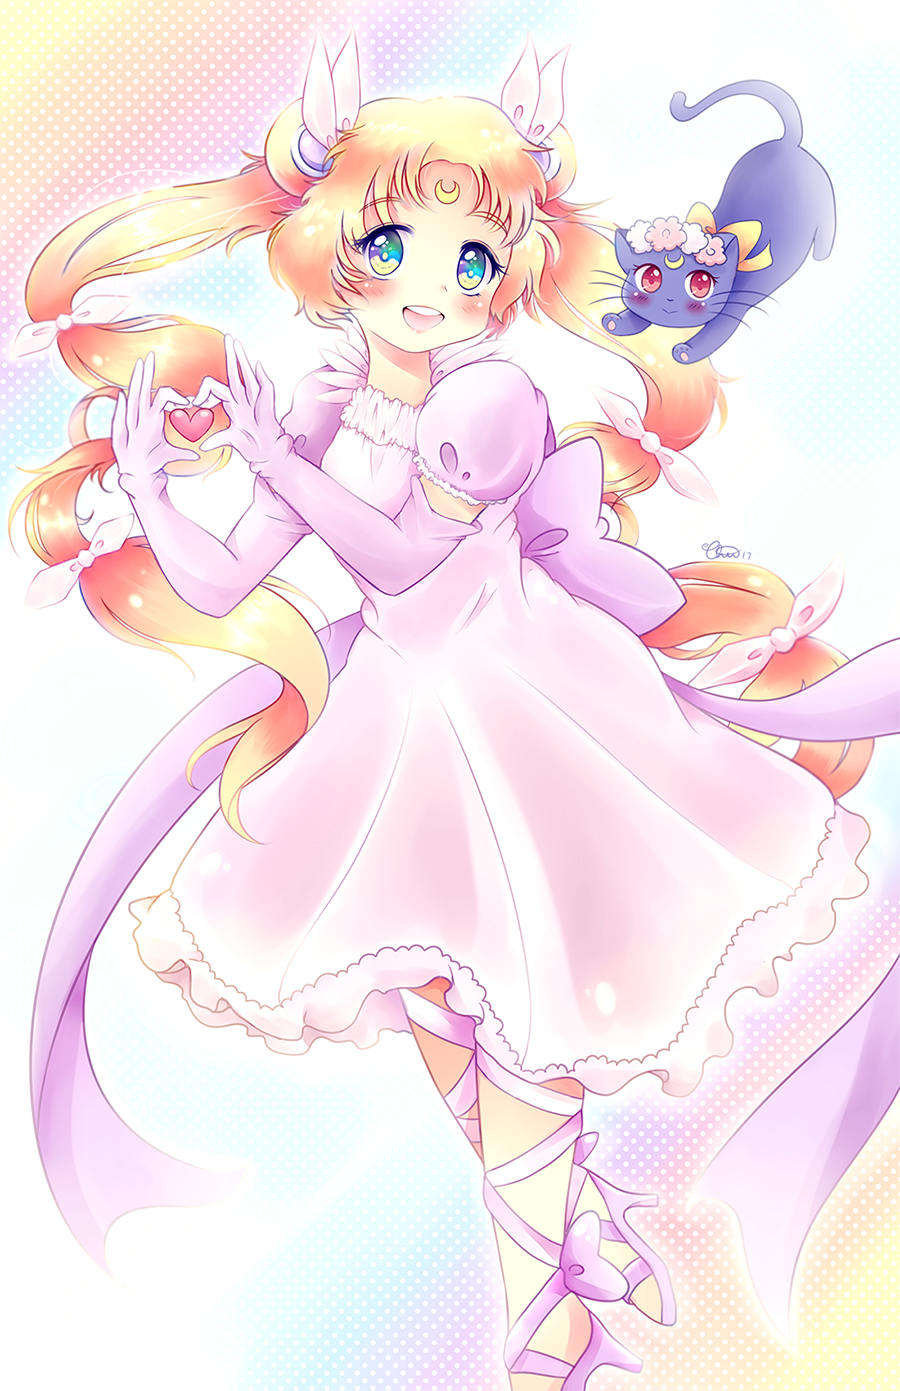 in_the_name_of_moe__by_seirasenchii-dazpqzy.png